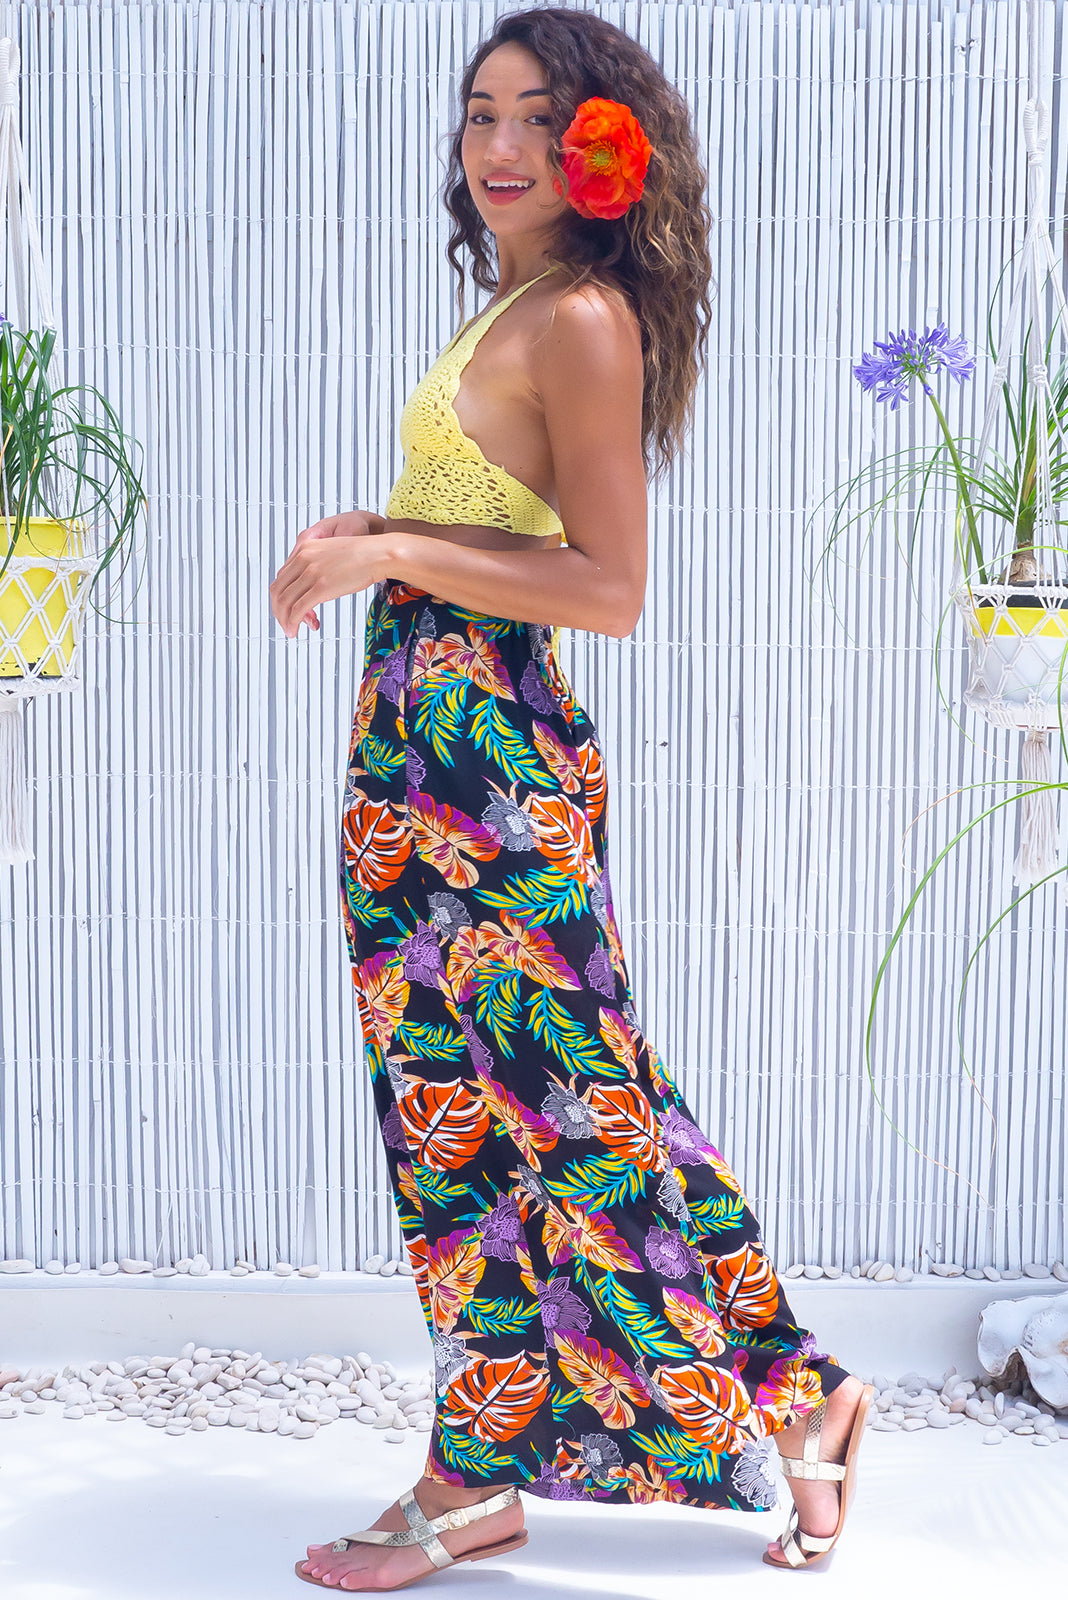 The Parakeet Jungle Flowers Pants features elasticated back of waist, belt loops with coconut button detail, side pockets and 100% viscose in black base with vibrant jungle leaf print,